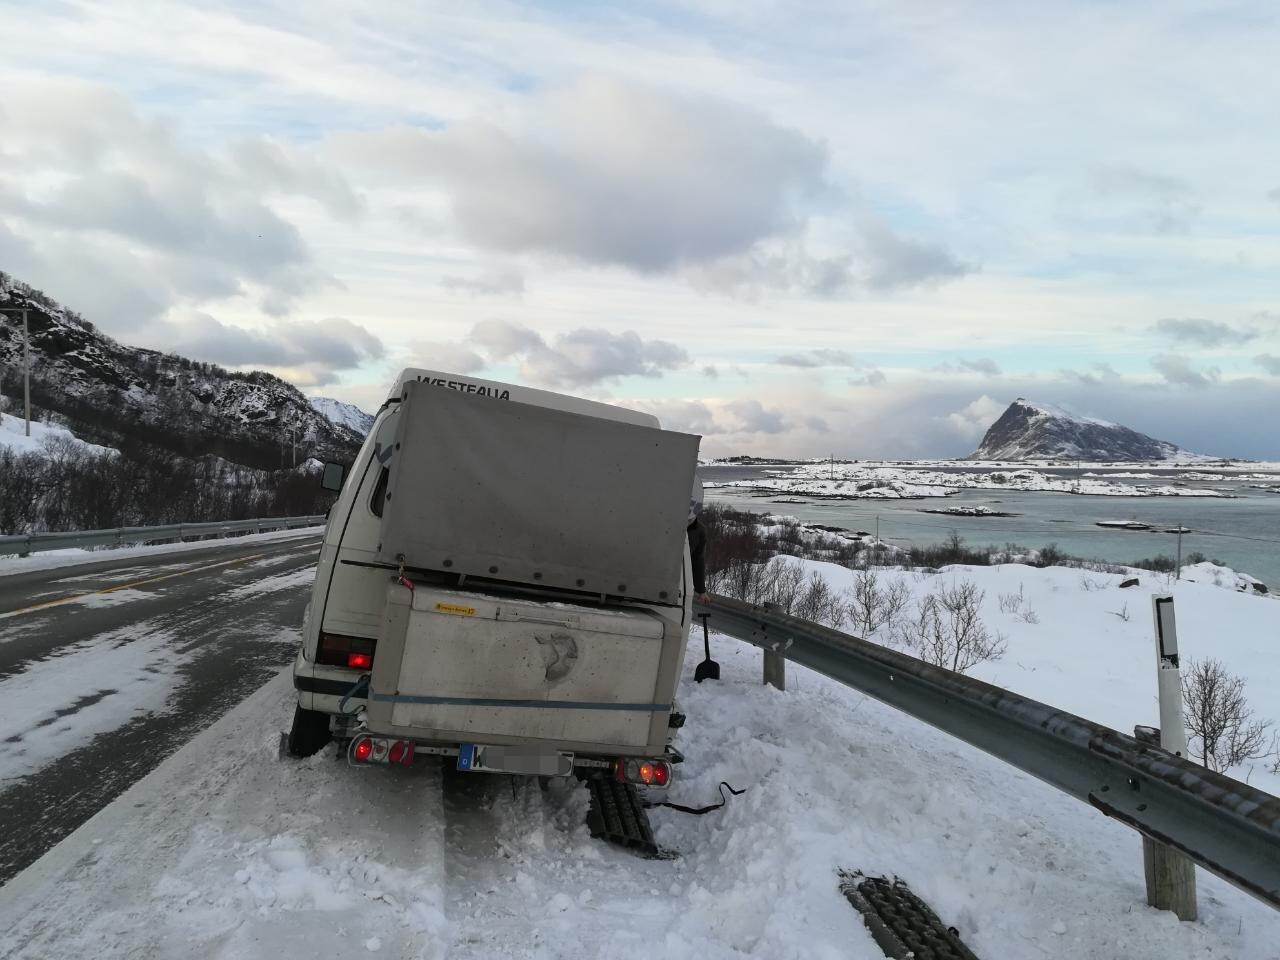 Lofoten Winter Camping